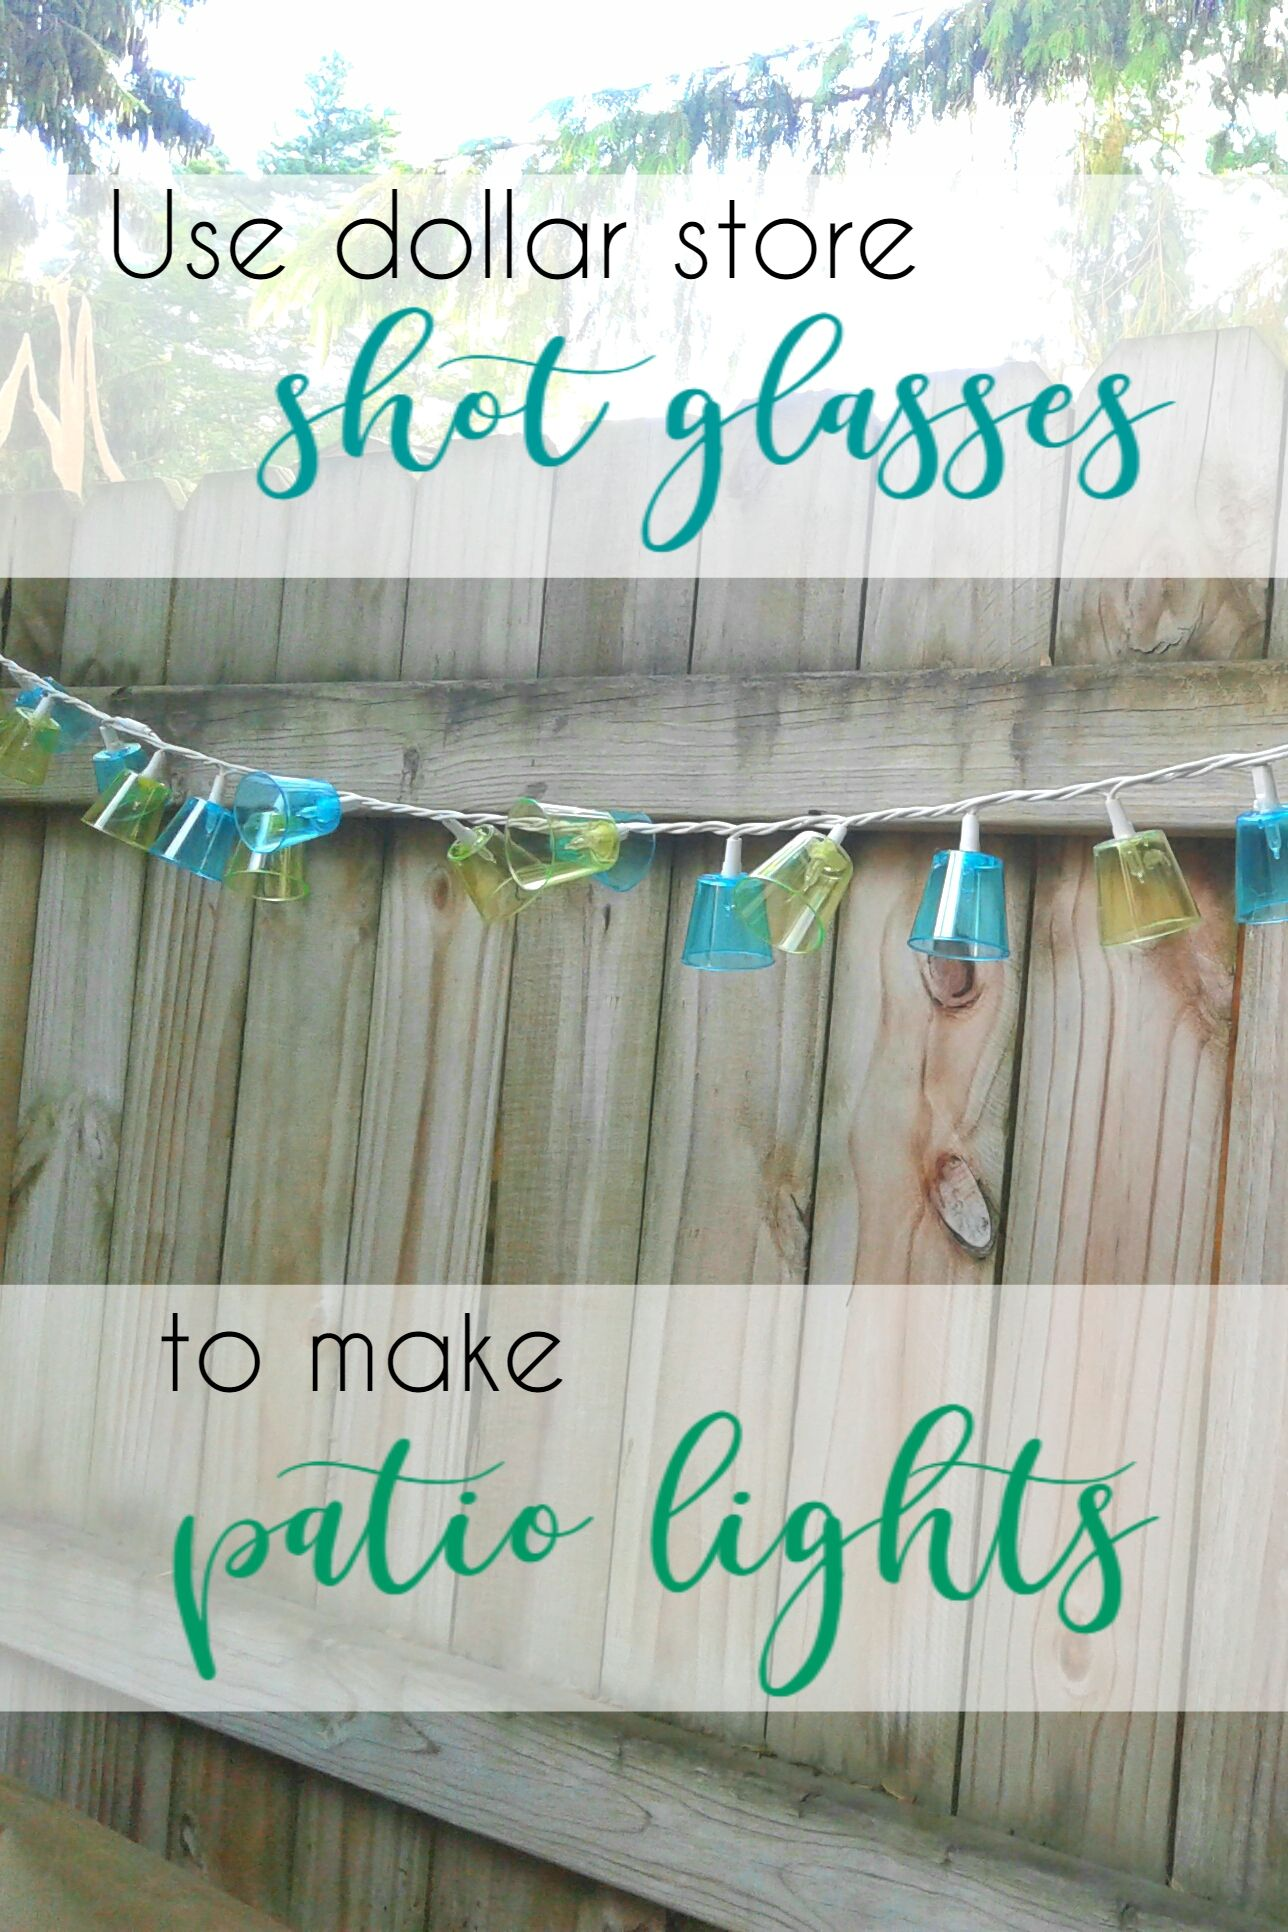 dollar store backyard ideas on dollar store crafts turn dollar store plastic shot glasses into colorful patio lights dollarstorec dollar store diy dollar stores diy dollar store crafts diy dollar store crafts